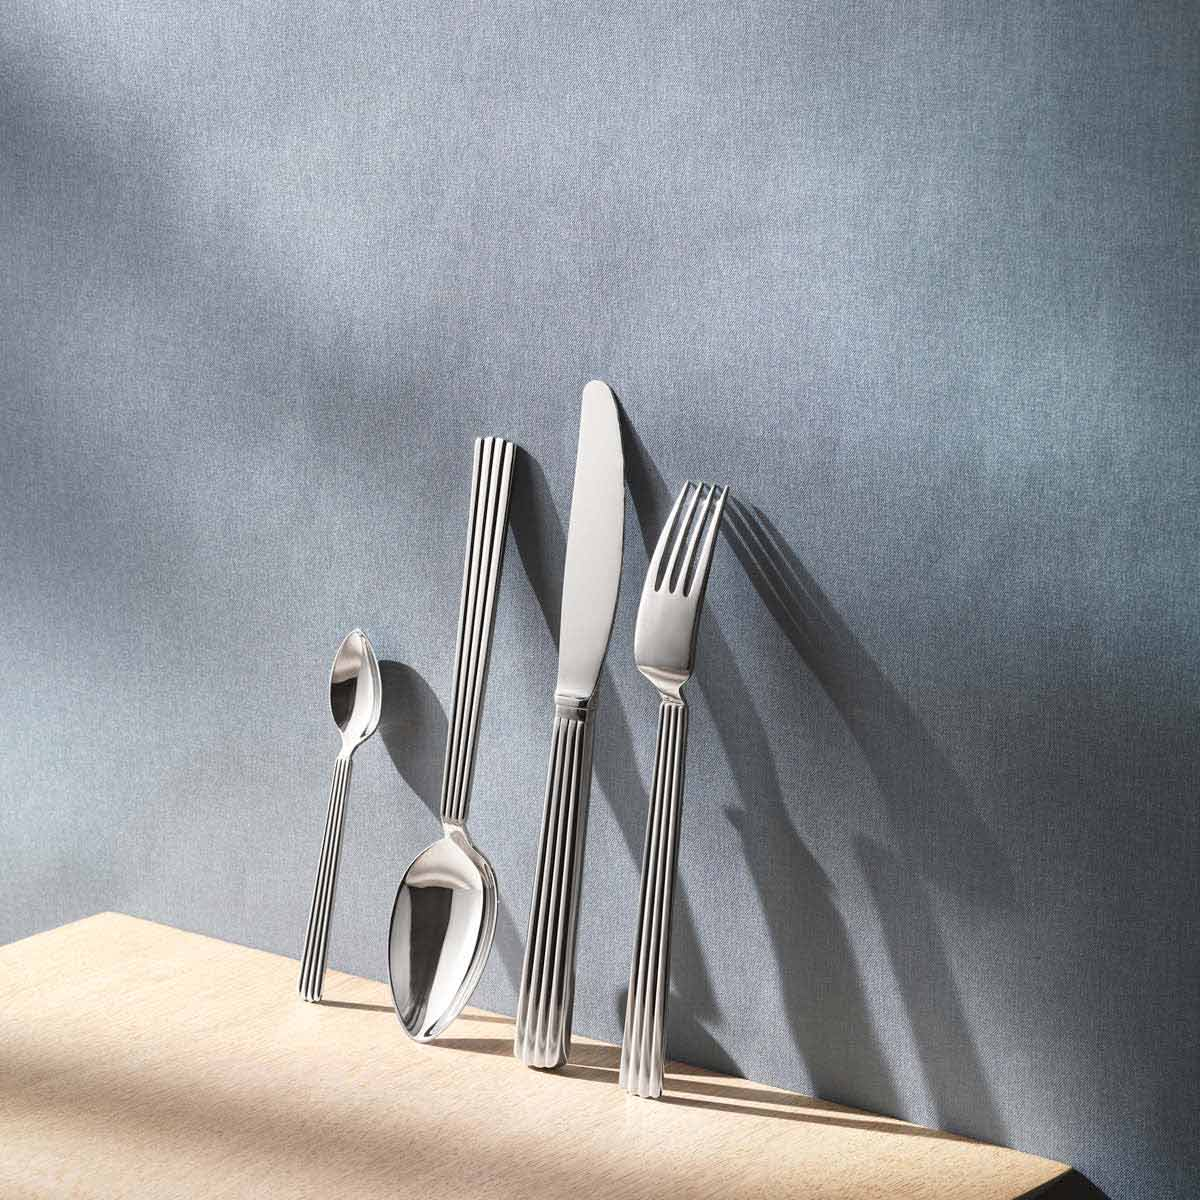 Bernadotte cutlery set in mirror-polished stainless steel